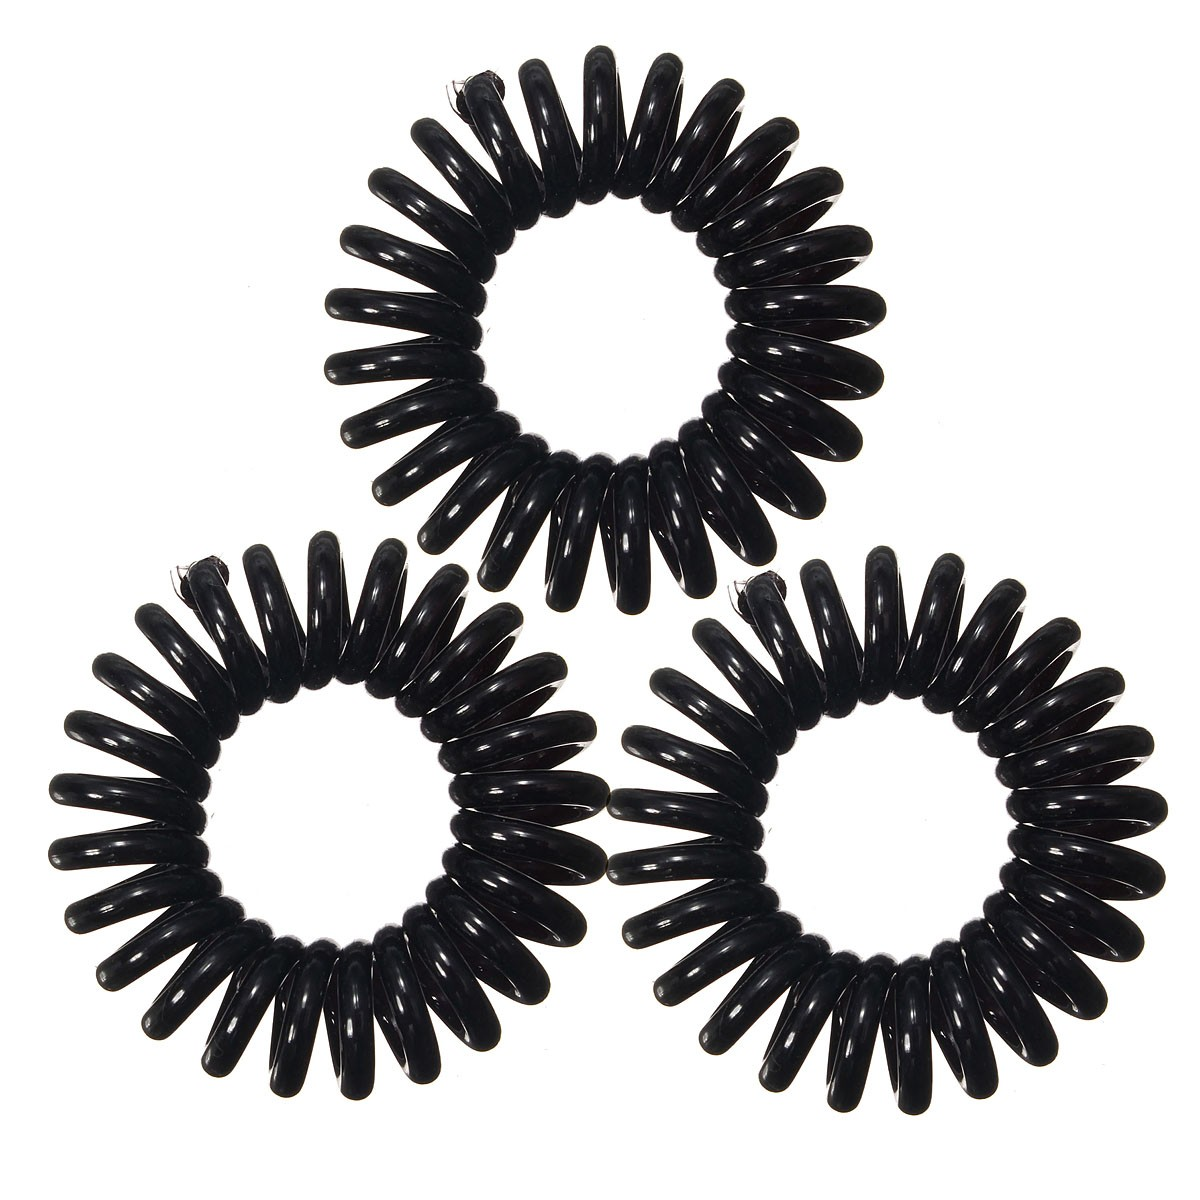 3Pcs/Pack Spiral Slinky Hair Head Bands Elastics Bobbles Ties Scrunchies Accessories